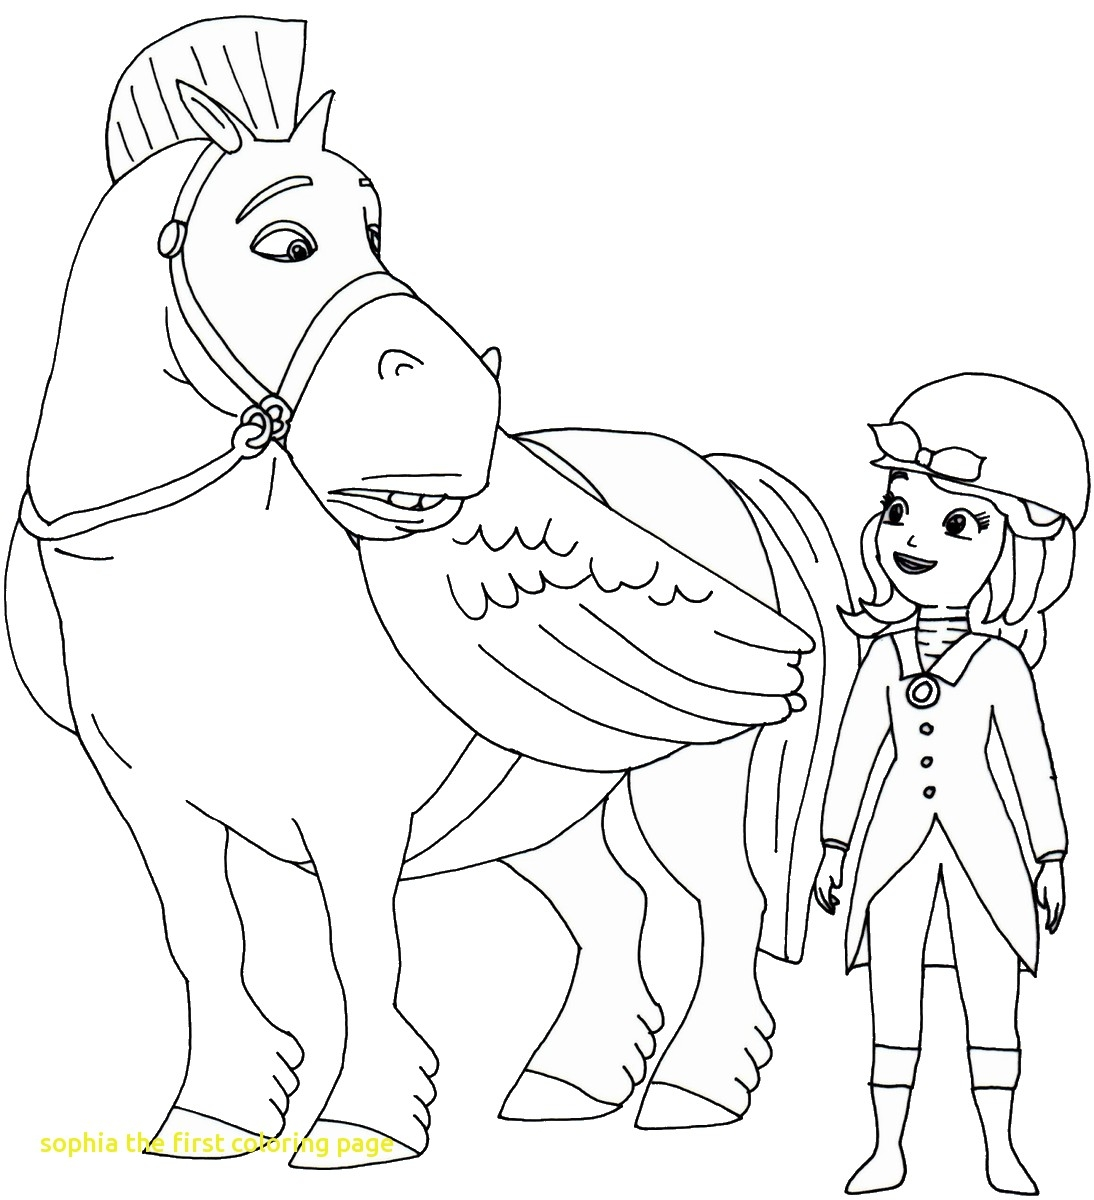 1094x1200 Coloring Superb Princess Amber Sofia Toddler Coloring Pages Nice